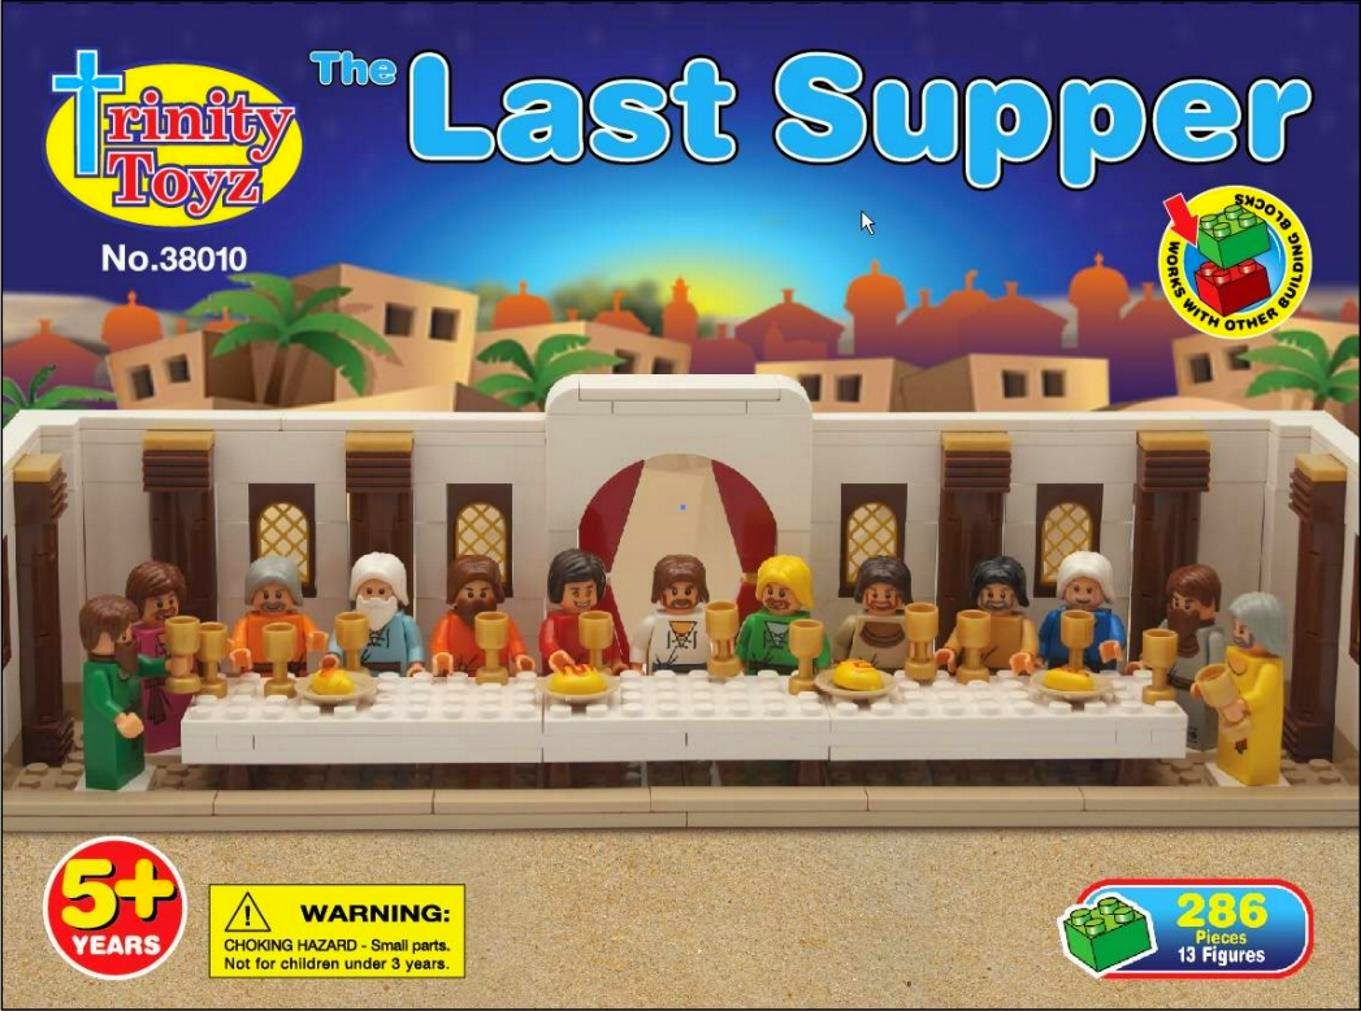 "http://www.amazon.com/Trinity-Toyz-Supper-Building-Block/dp/B00F3J1GJ2/?_encoding=UTF8&camp=1789&creative=9325&keywords=the%20last%20supper%20toy%20trinity%20toys&linkCode=ur2&qid=1427464248&sr=8-1&tag=awiwobuheho-20&linkId=TFUIMYDTNO2JL3VS""></a><img src=""http://ir-na.amazon-adsystem.com/e/ir?t=awiwobuheho-20&l=ur2&o=1"" width=""1"" height=""1"" border=""0"" alt="""" style=""border:none !important; margin:0px !important;"" /"